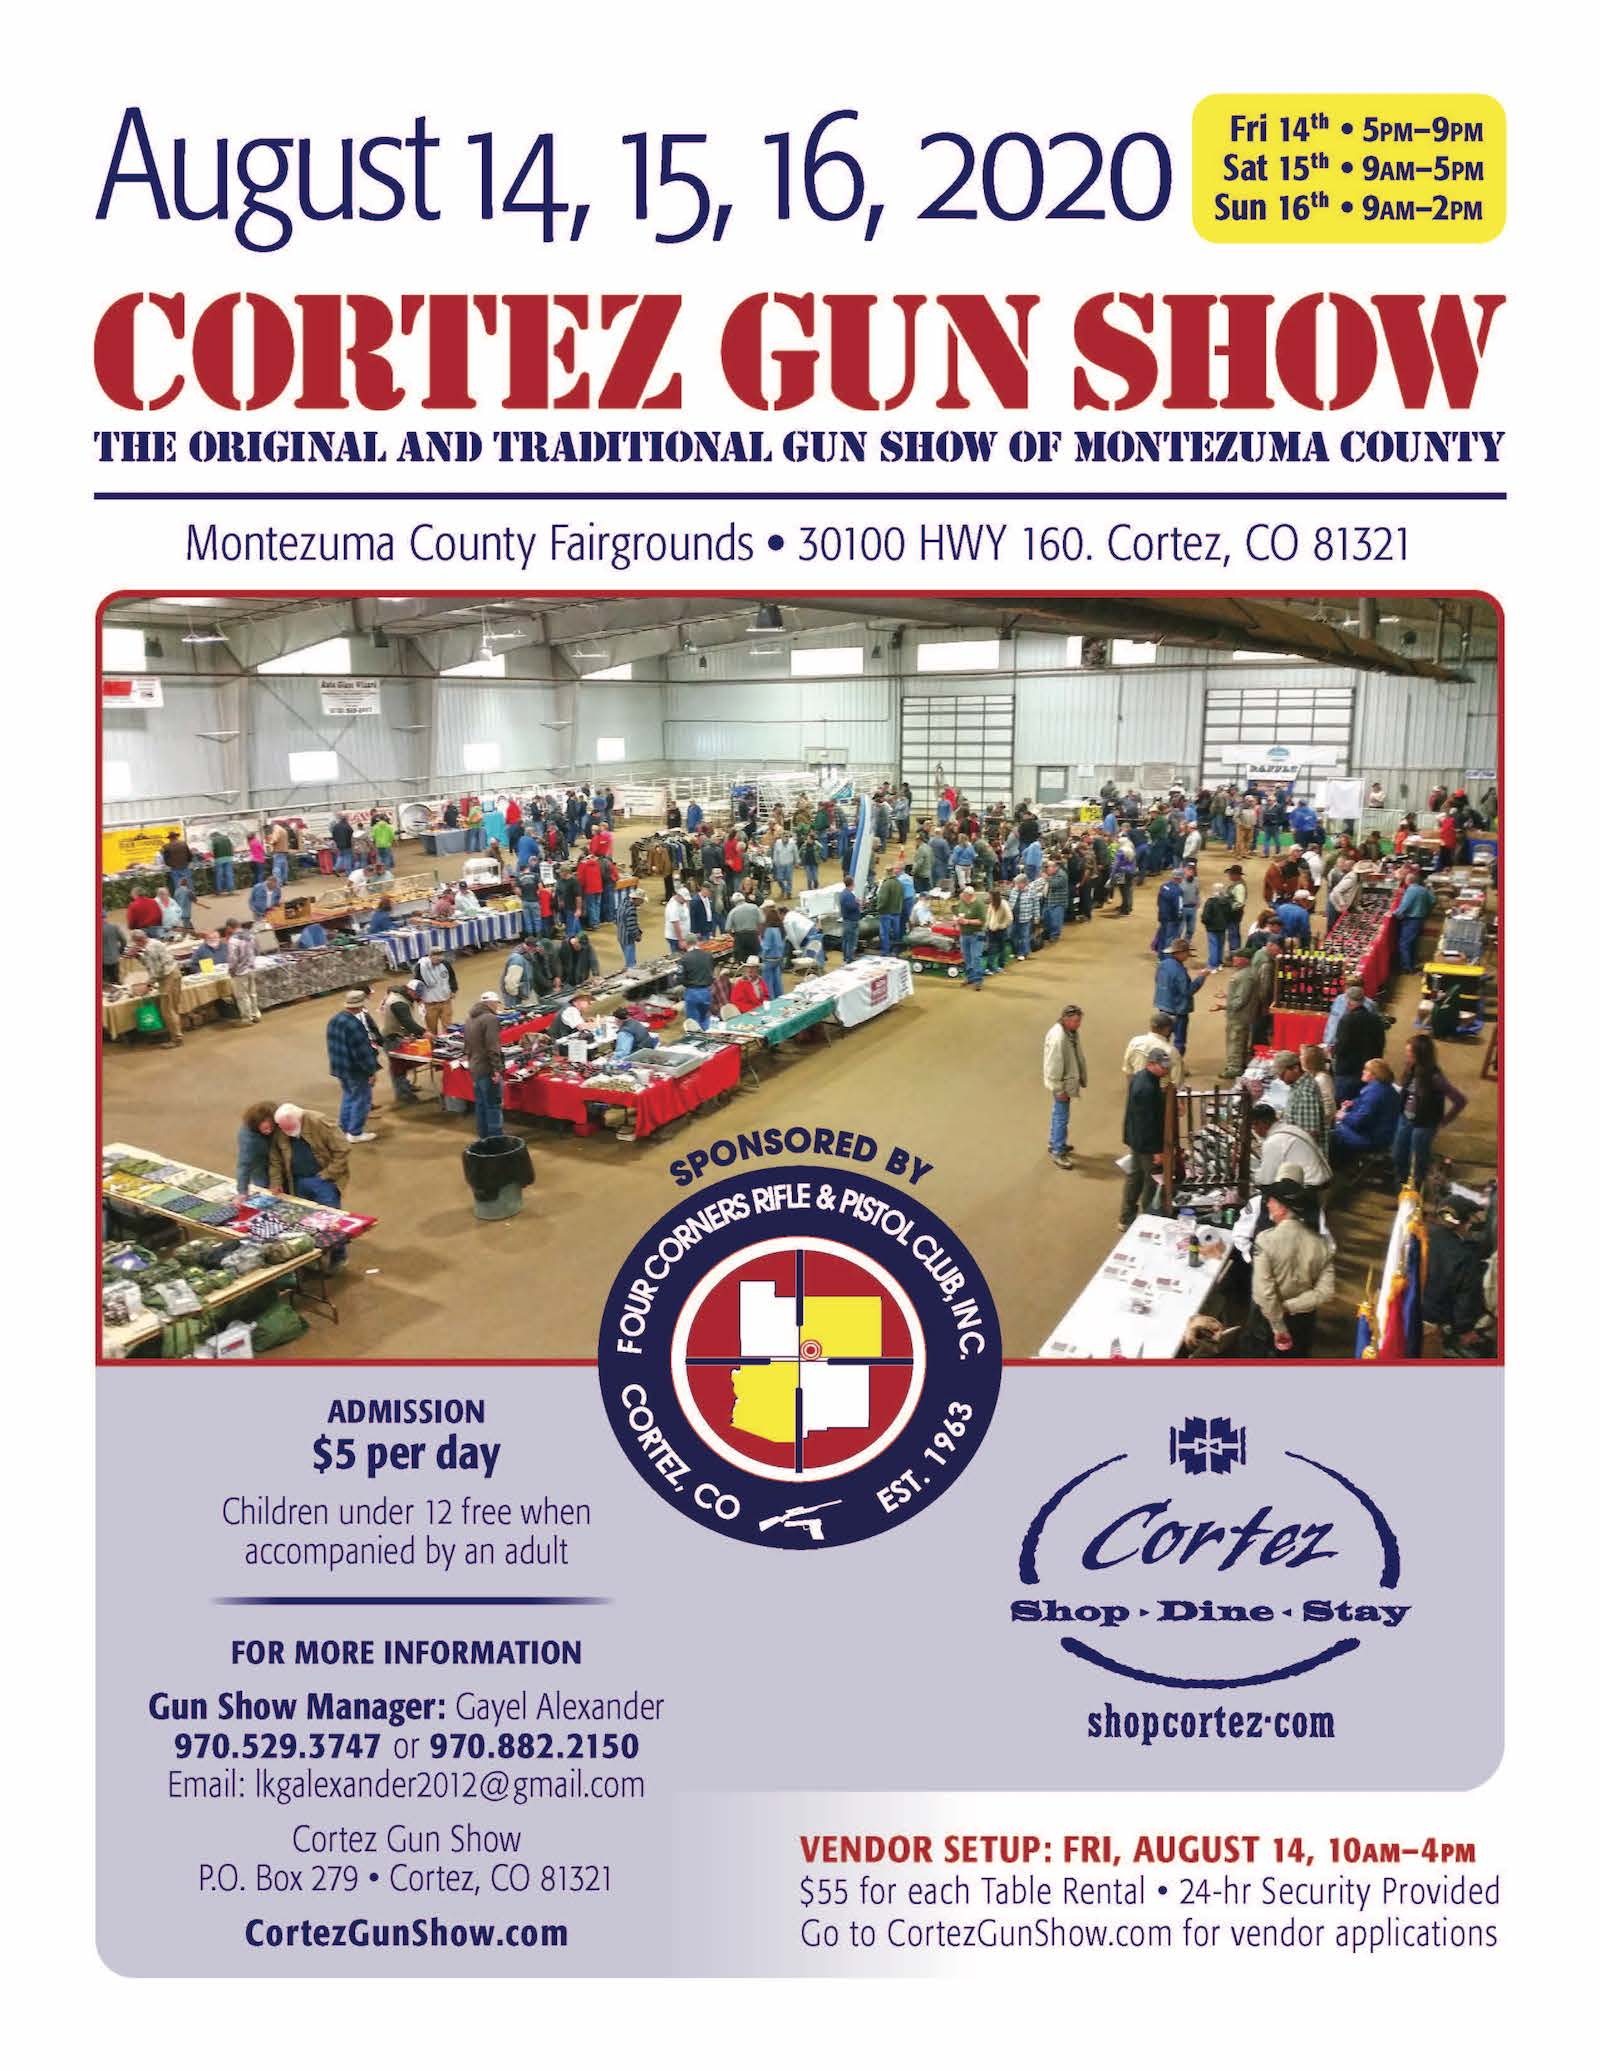 Cortez Gun Show Aug 2020 flyer